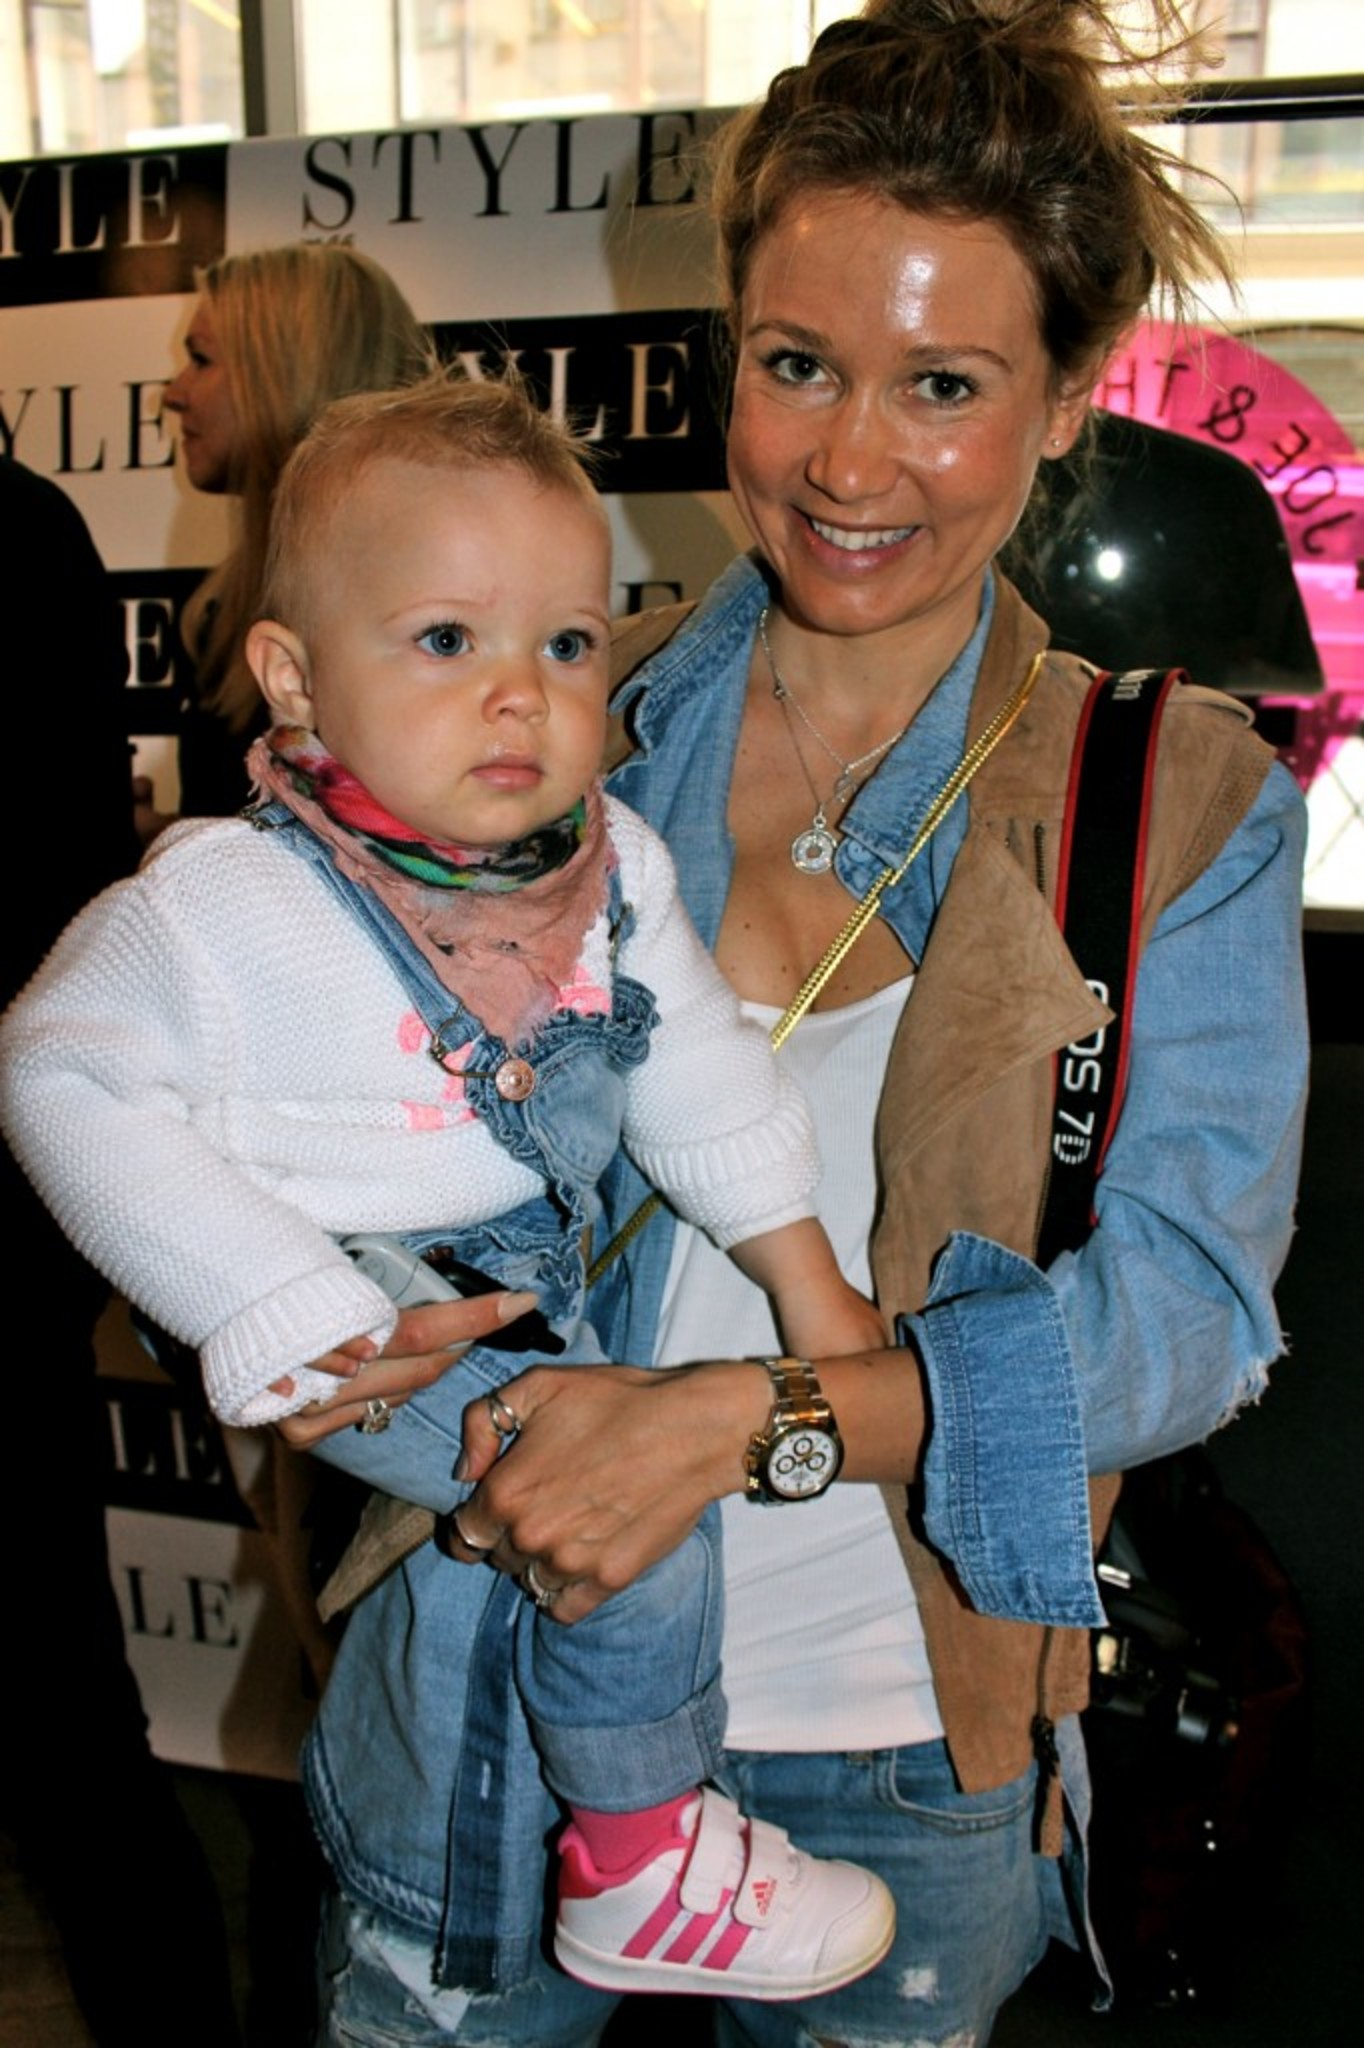 Fashionable Mum & Daughter! Denim Girls <3